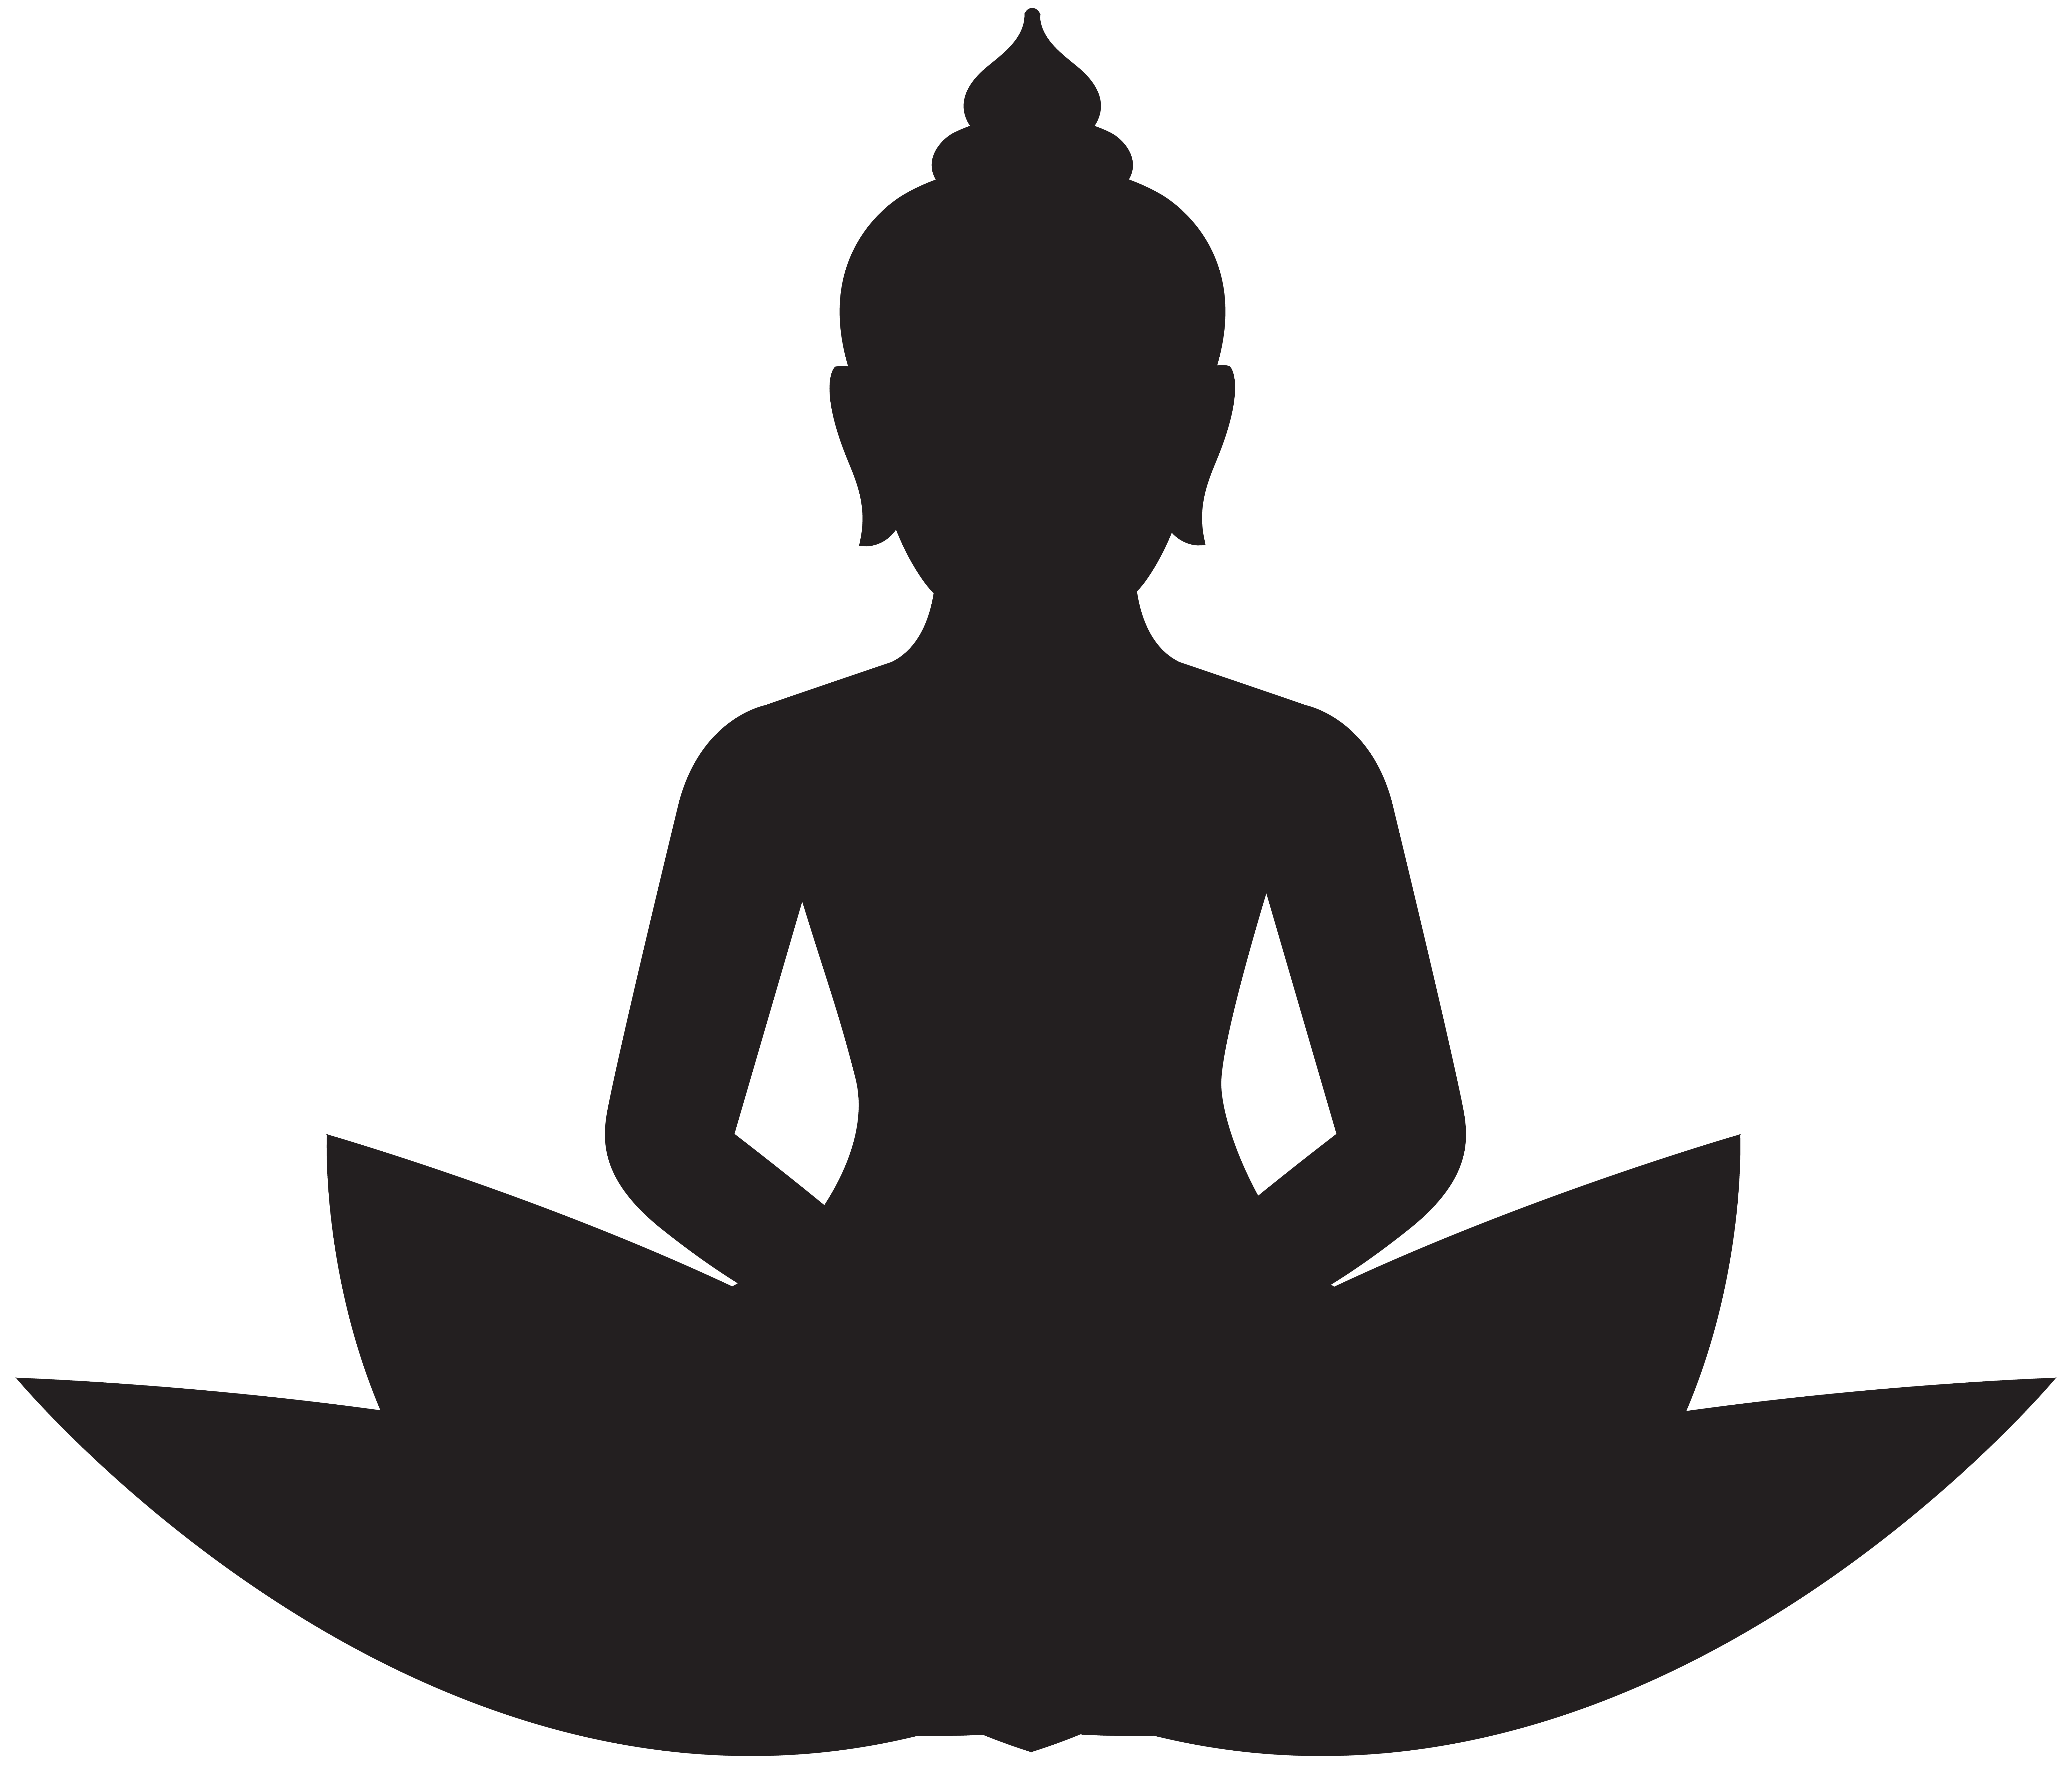 banner transparent stock Meditating silhouette png clip. Buddha clipart